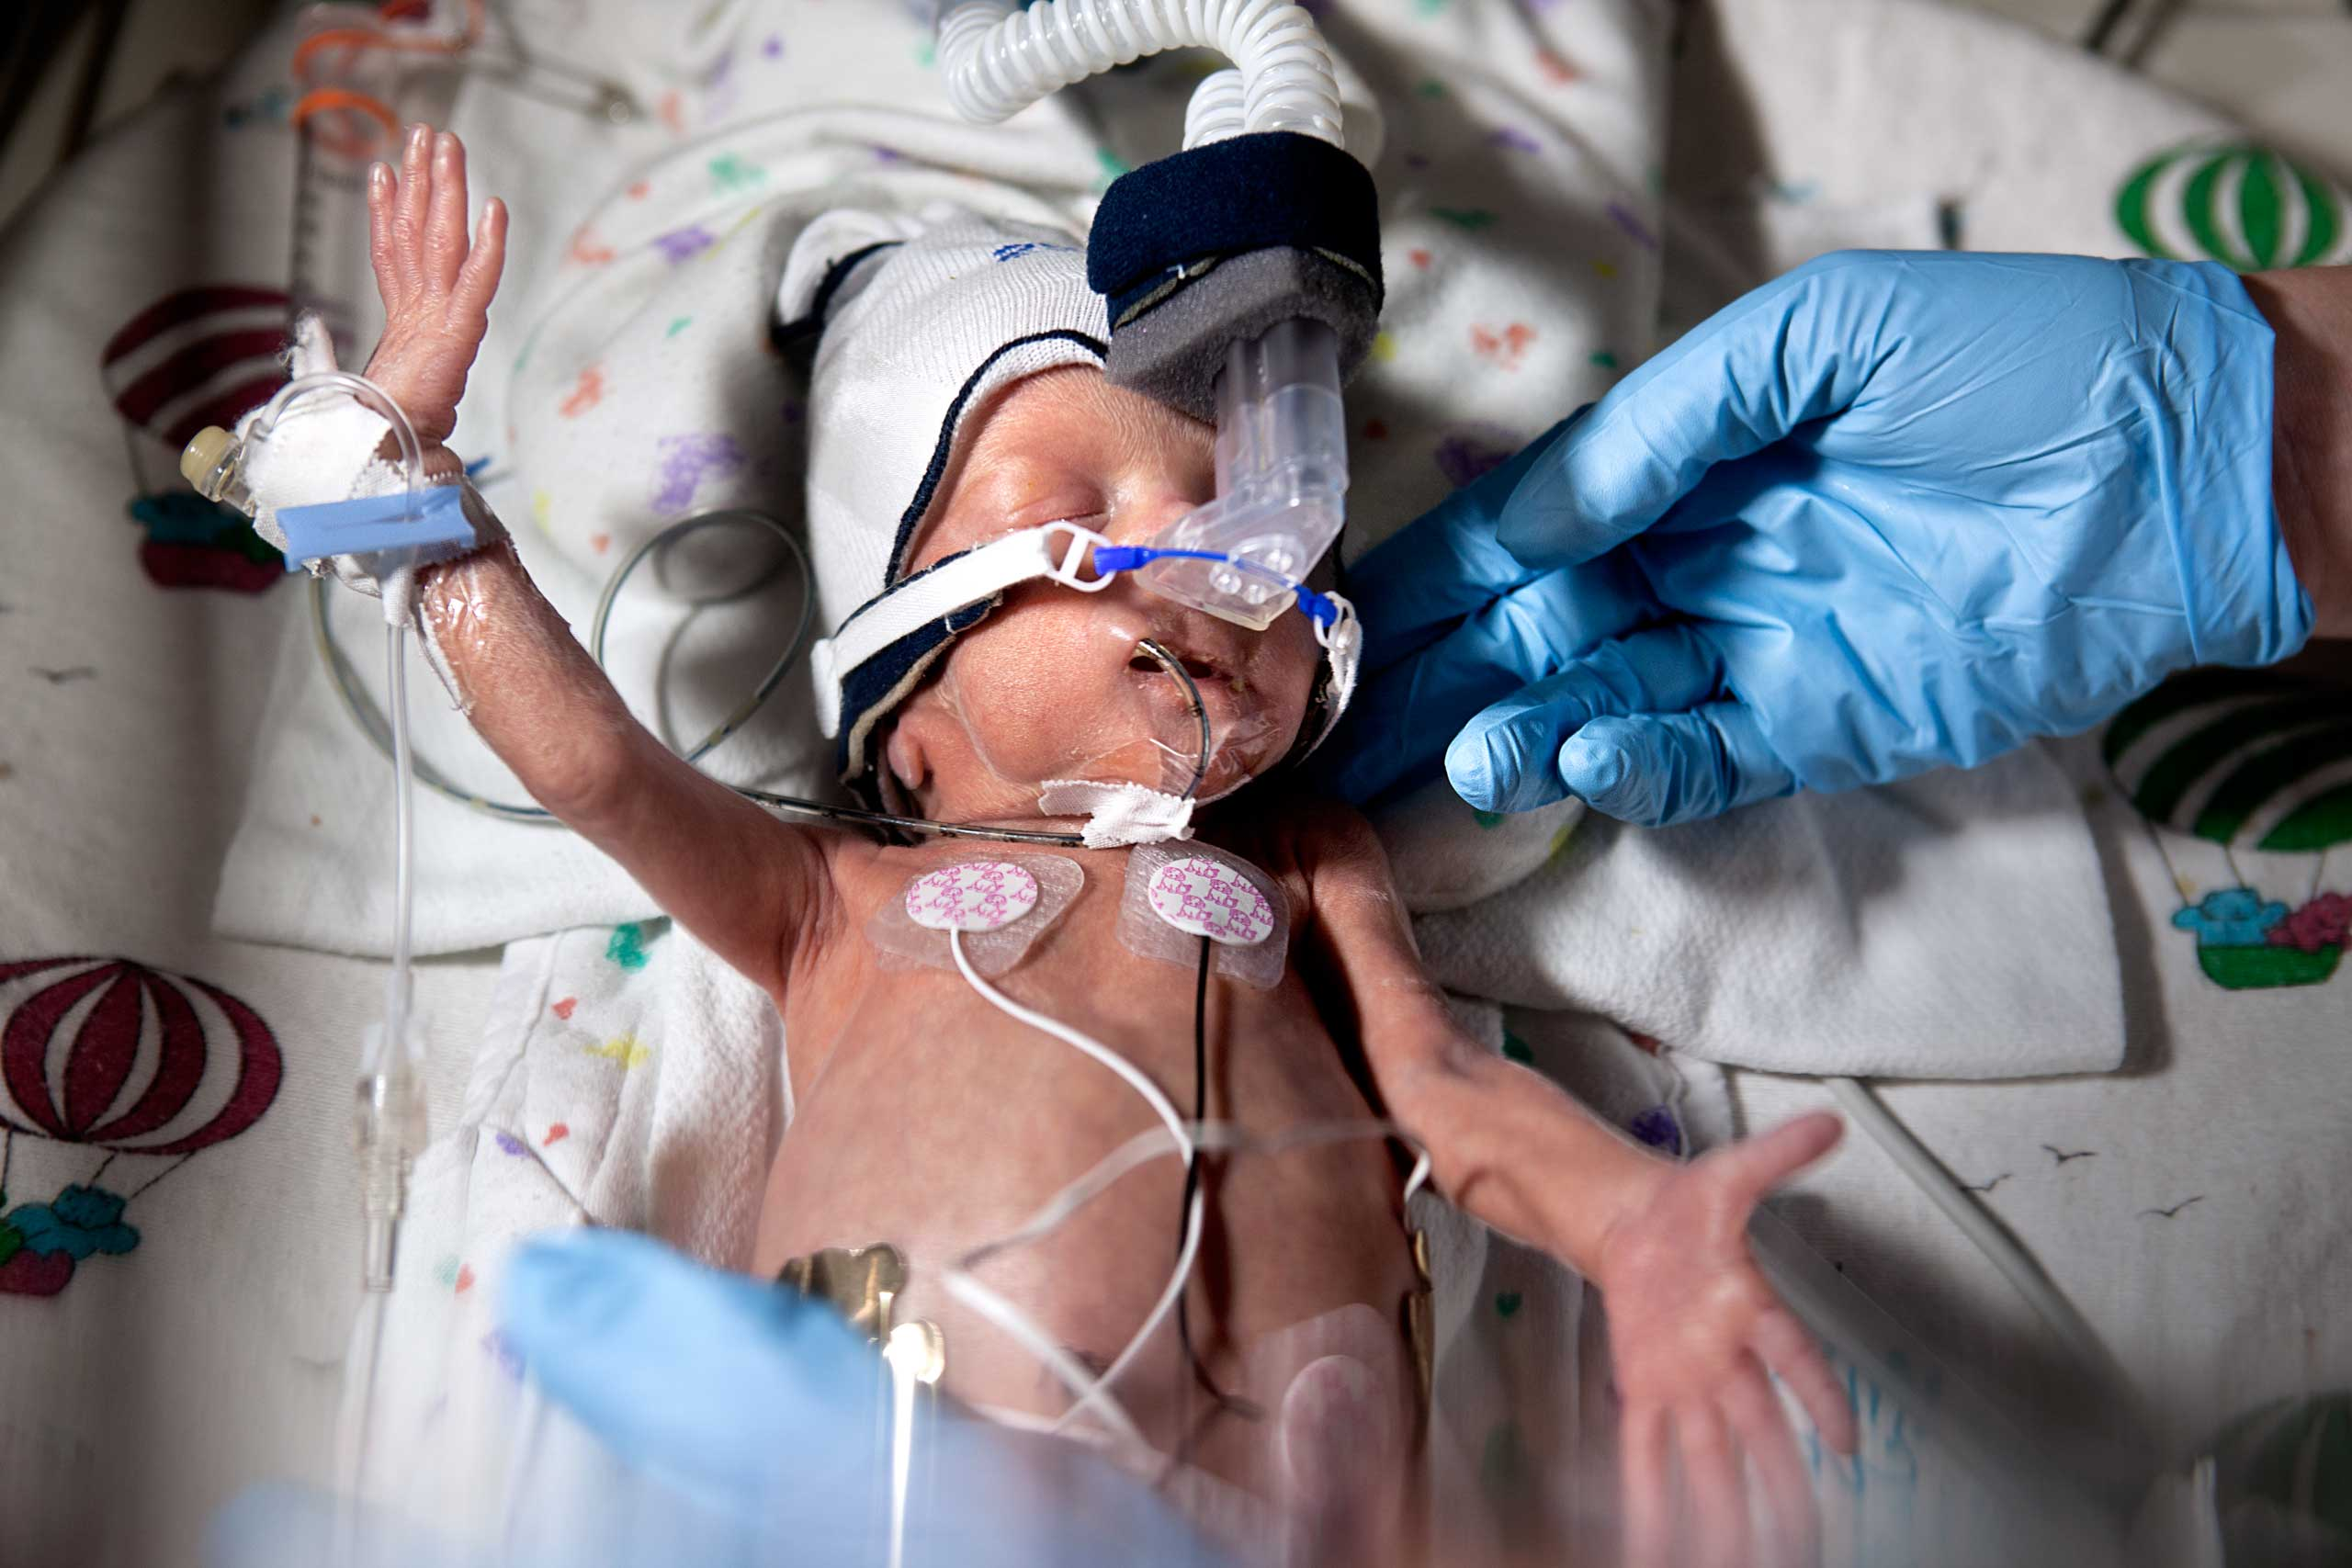 David, an infant born at 28 weeks gestation, is seen in an incubator at the Children's Hospital of Wisconsin. From  Meeting Baby David: Elinor Carucci's Powerful Portraits of Preemies